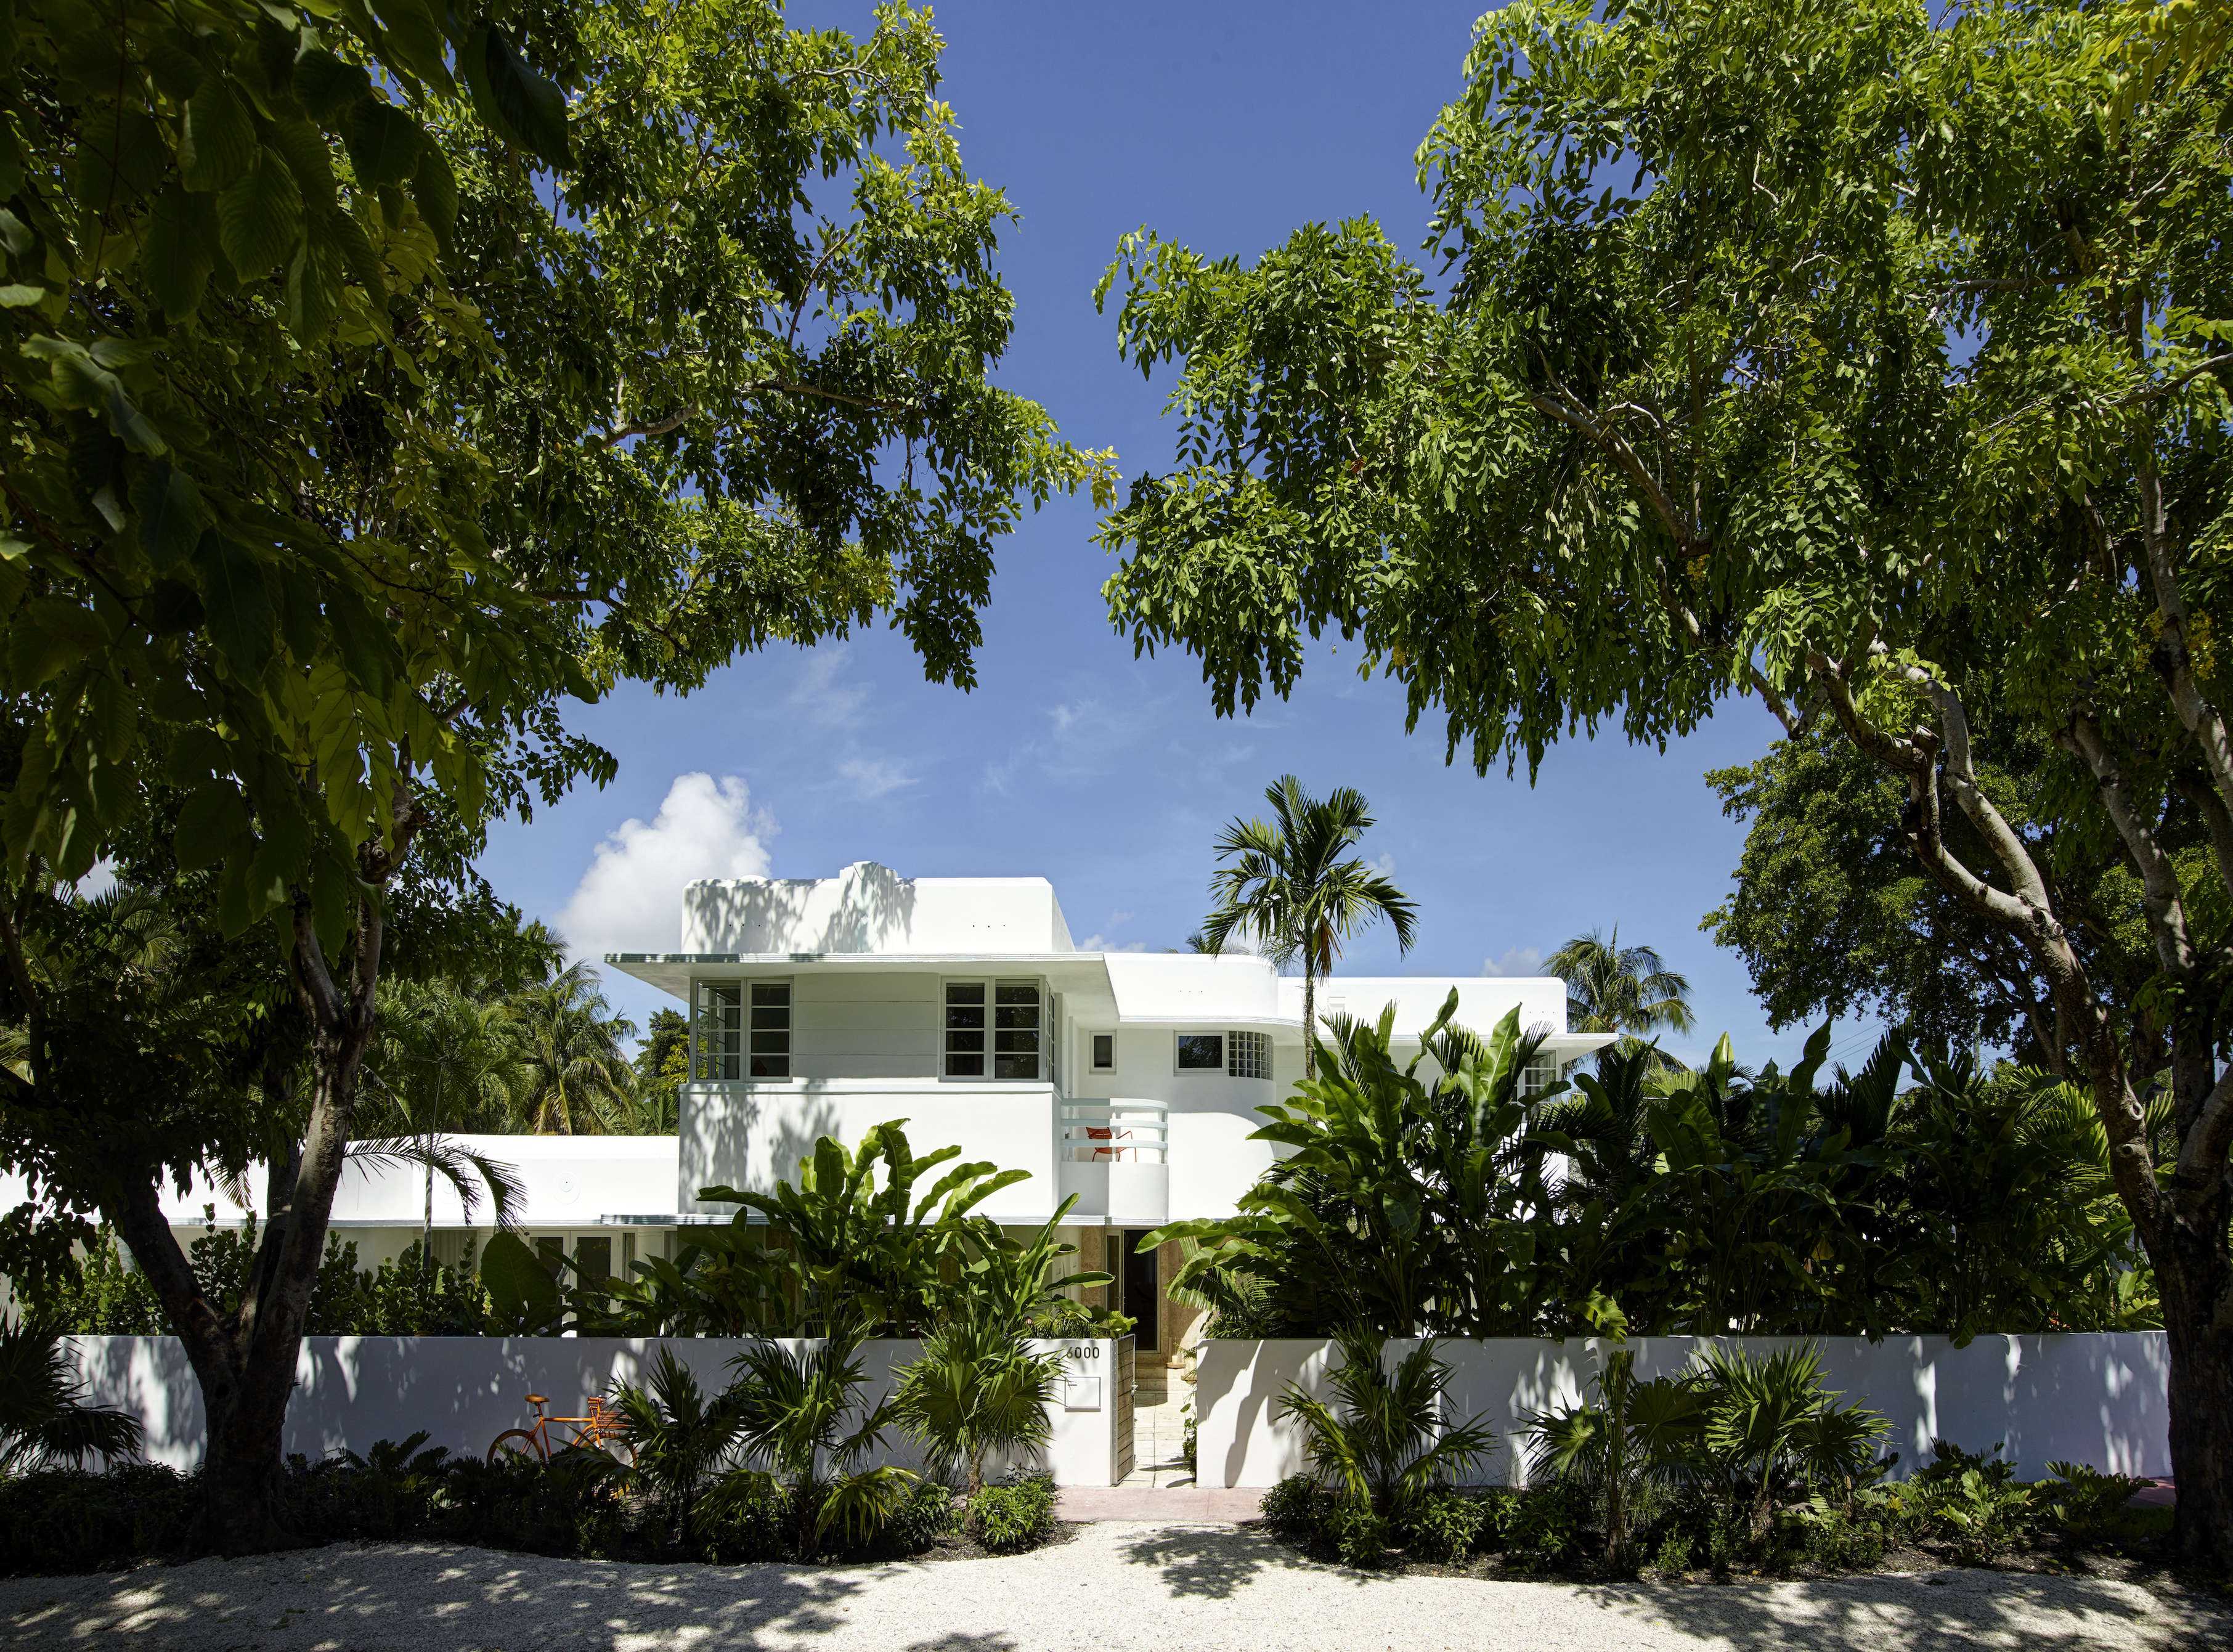 Modern in Miami At Home with a Worldly Contemporary Furniture Dealer Revived 1932 Miami art deco villa belonging to contemporary furniture dealer Stephan Weishaupt of Avenue Road, Richard Powers photo | Remodelista